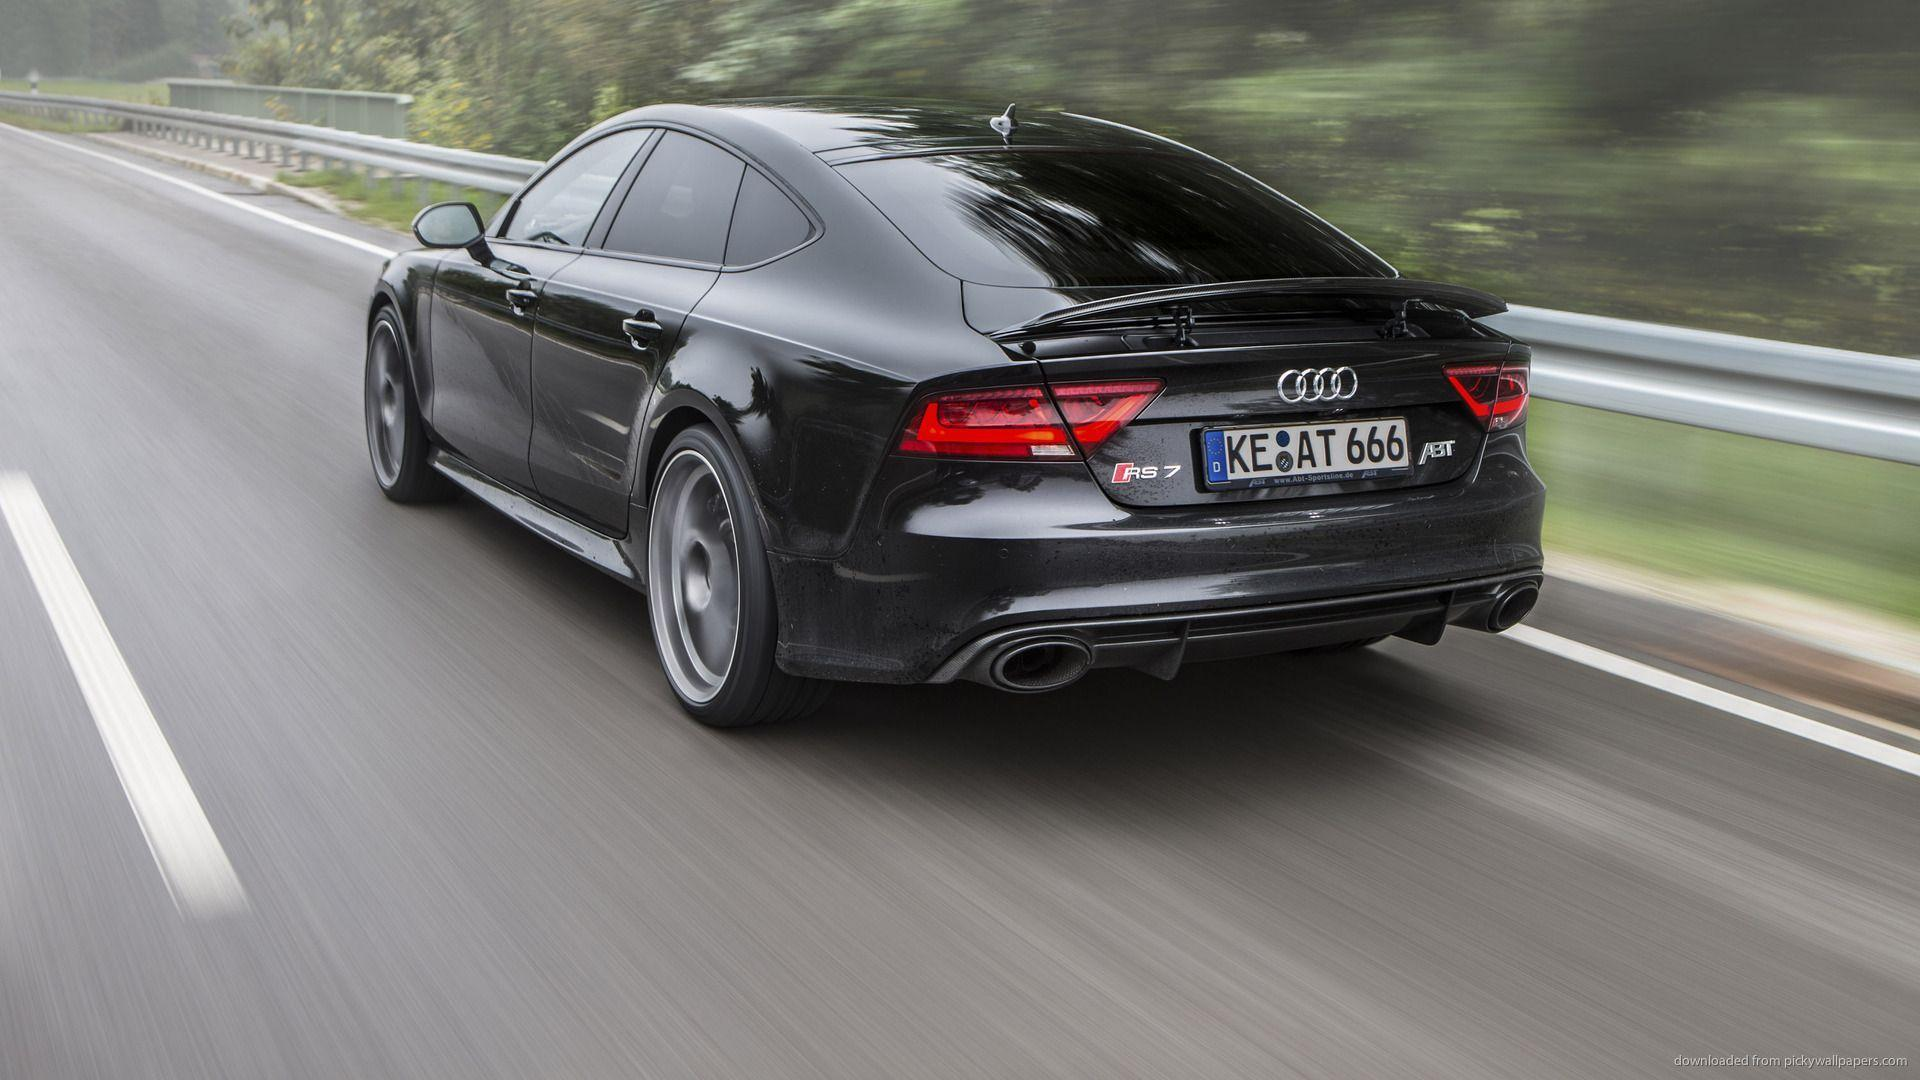 Download 1920x1080 ABT Audi RS7 Wallpapers